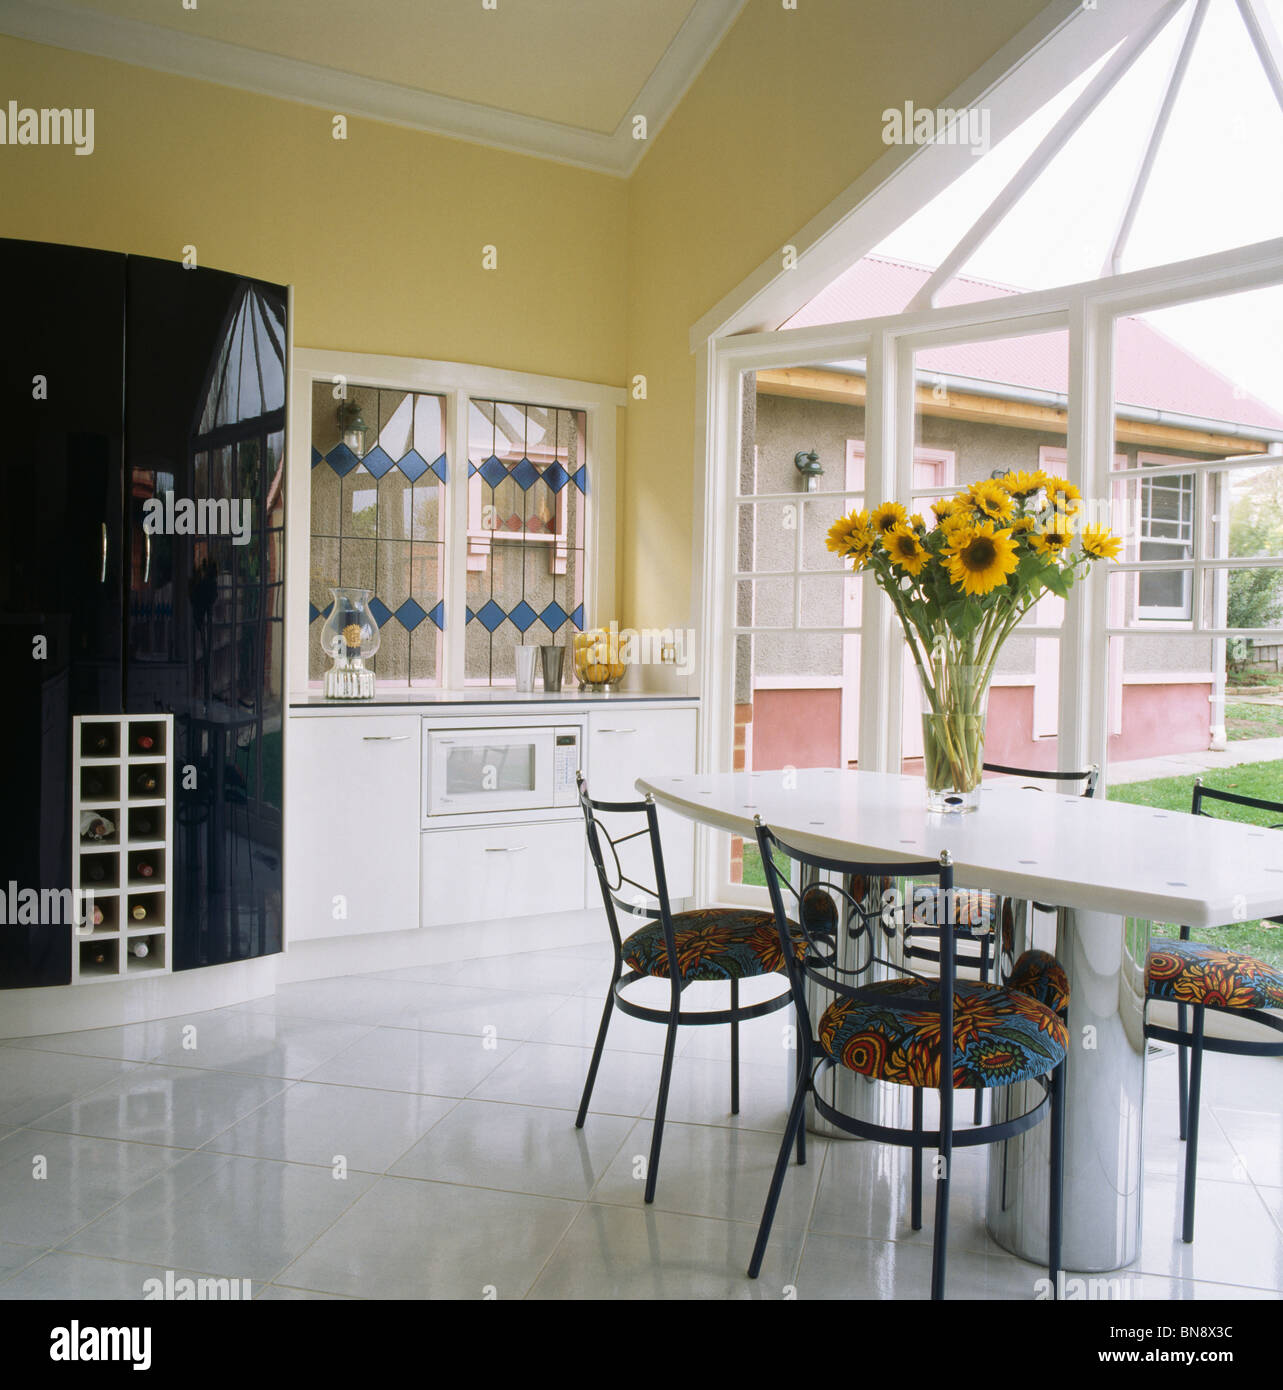 White Floor Tiles Kitchen White Ceramic Floor Tiles In Modern Pale Yellow Kitchen With